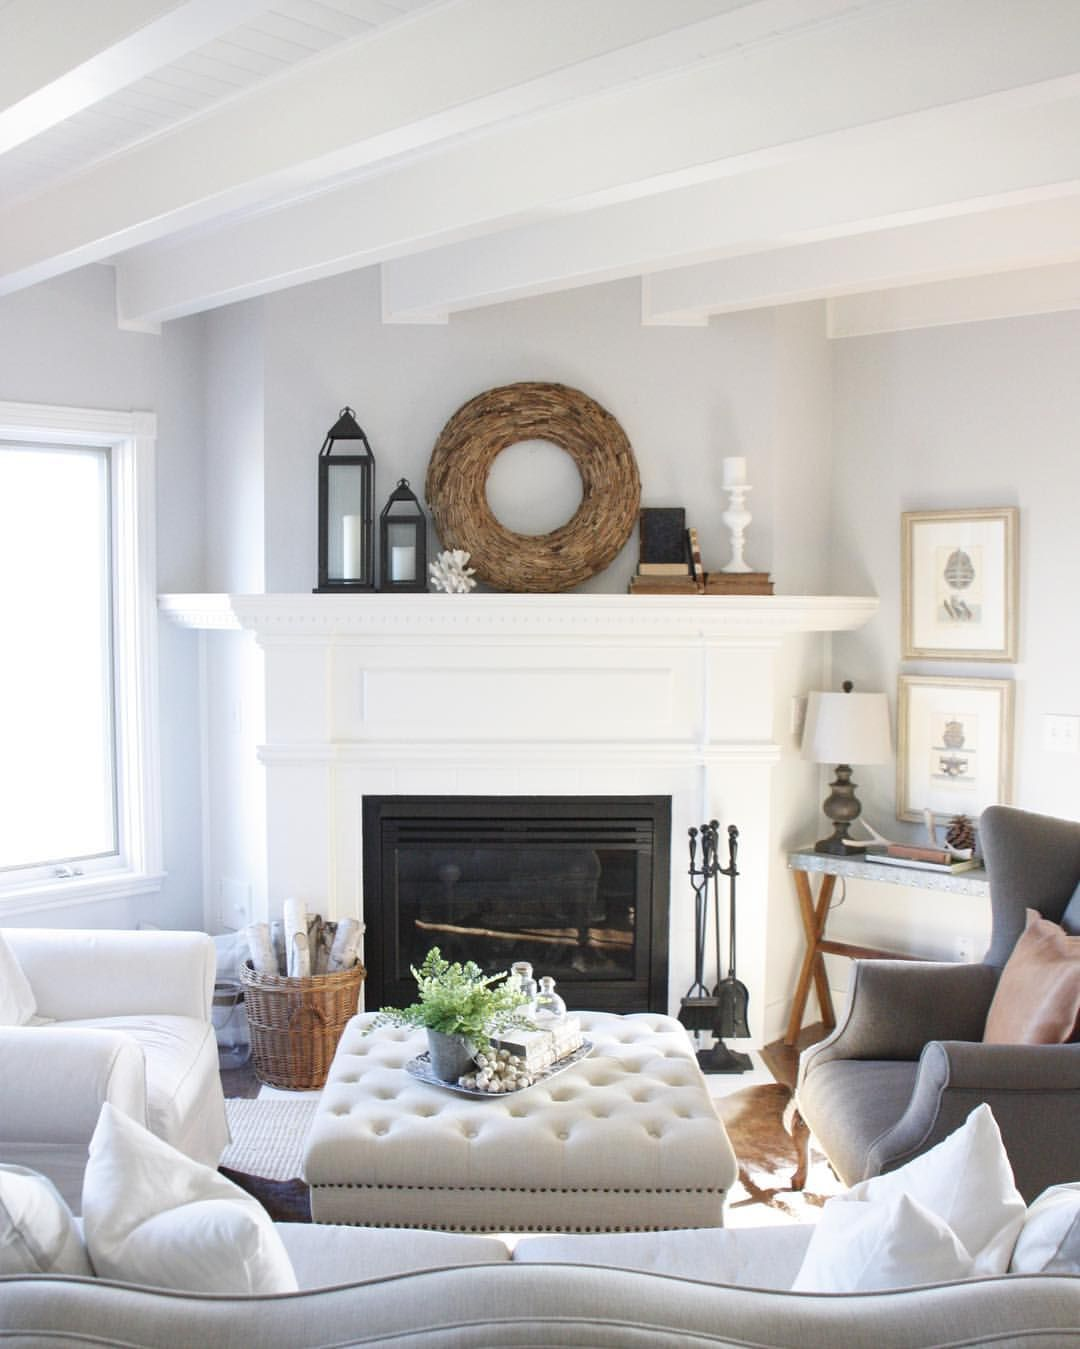 Pin by Rachael Hale (The History Magpie) on Sitting room | Pinterest ...